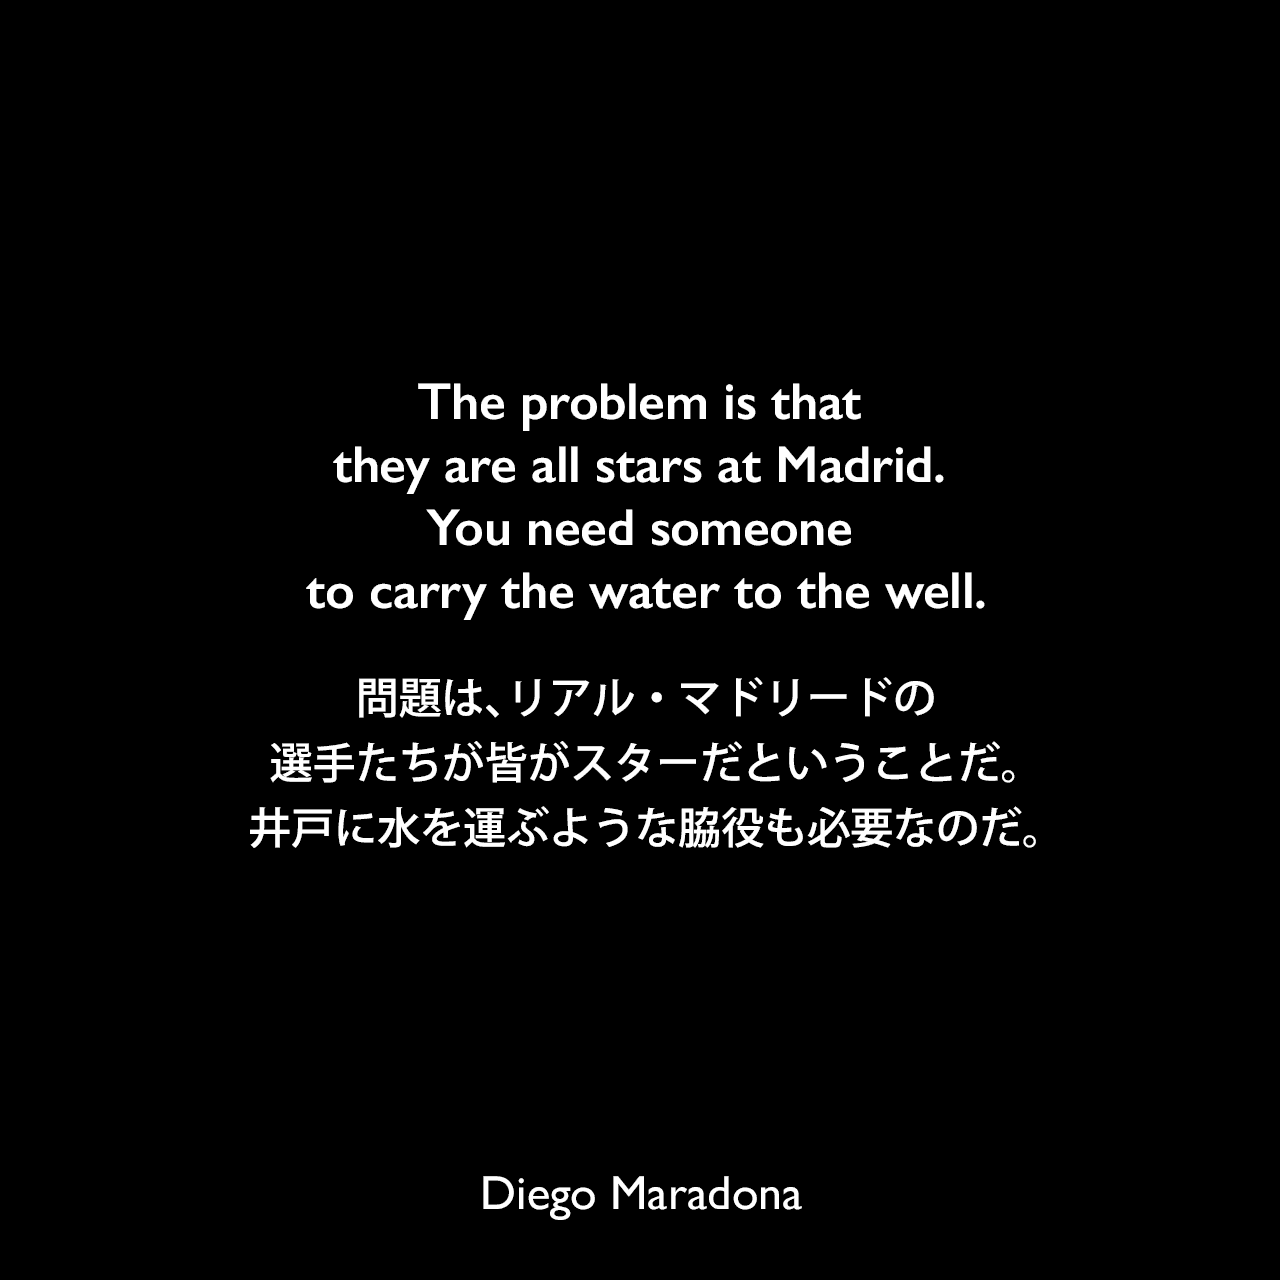 The problem is that they are all stars at Madrid. You need someone to carry the water to the well.問題は、リアル・マドリードの選手たちが皆がスターだということだ。井戸に水を運ぶような脇役も必要なのだ。Diego Maradona